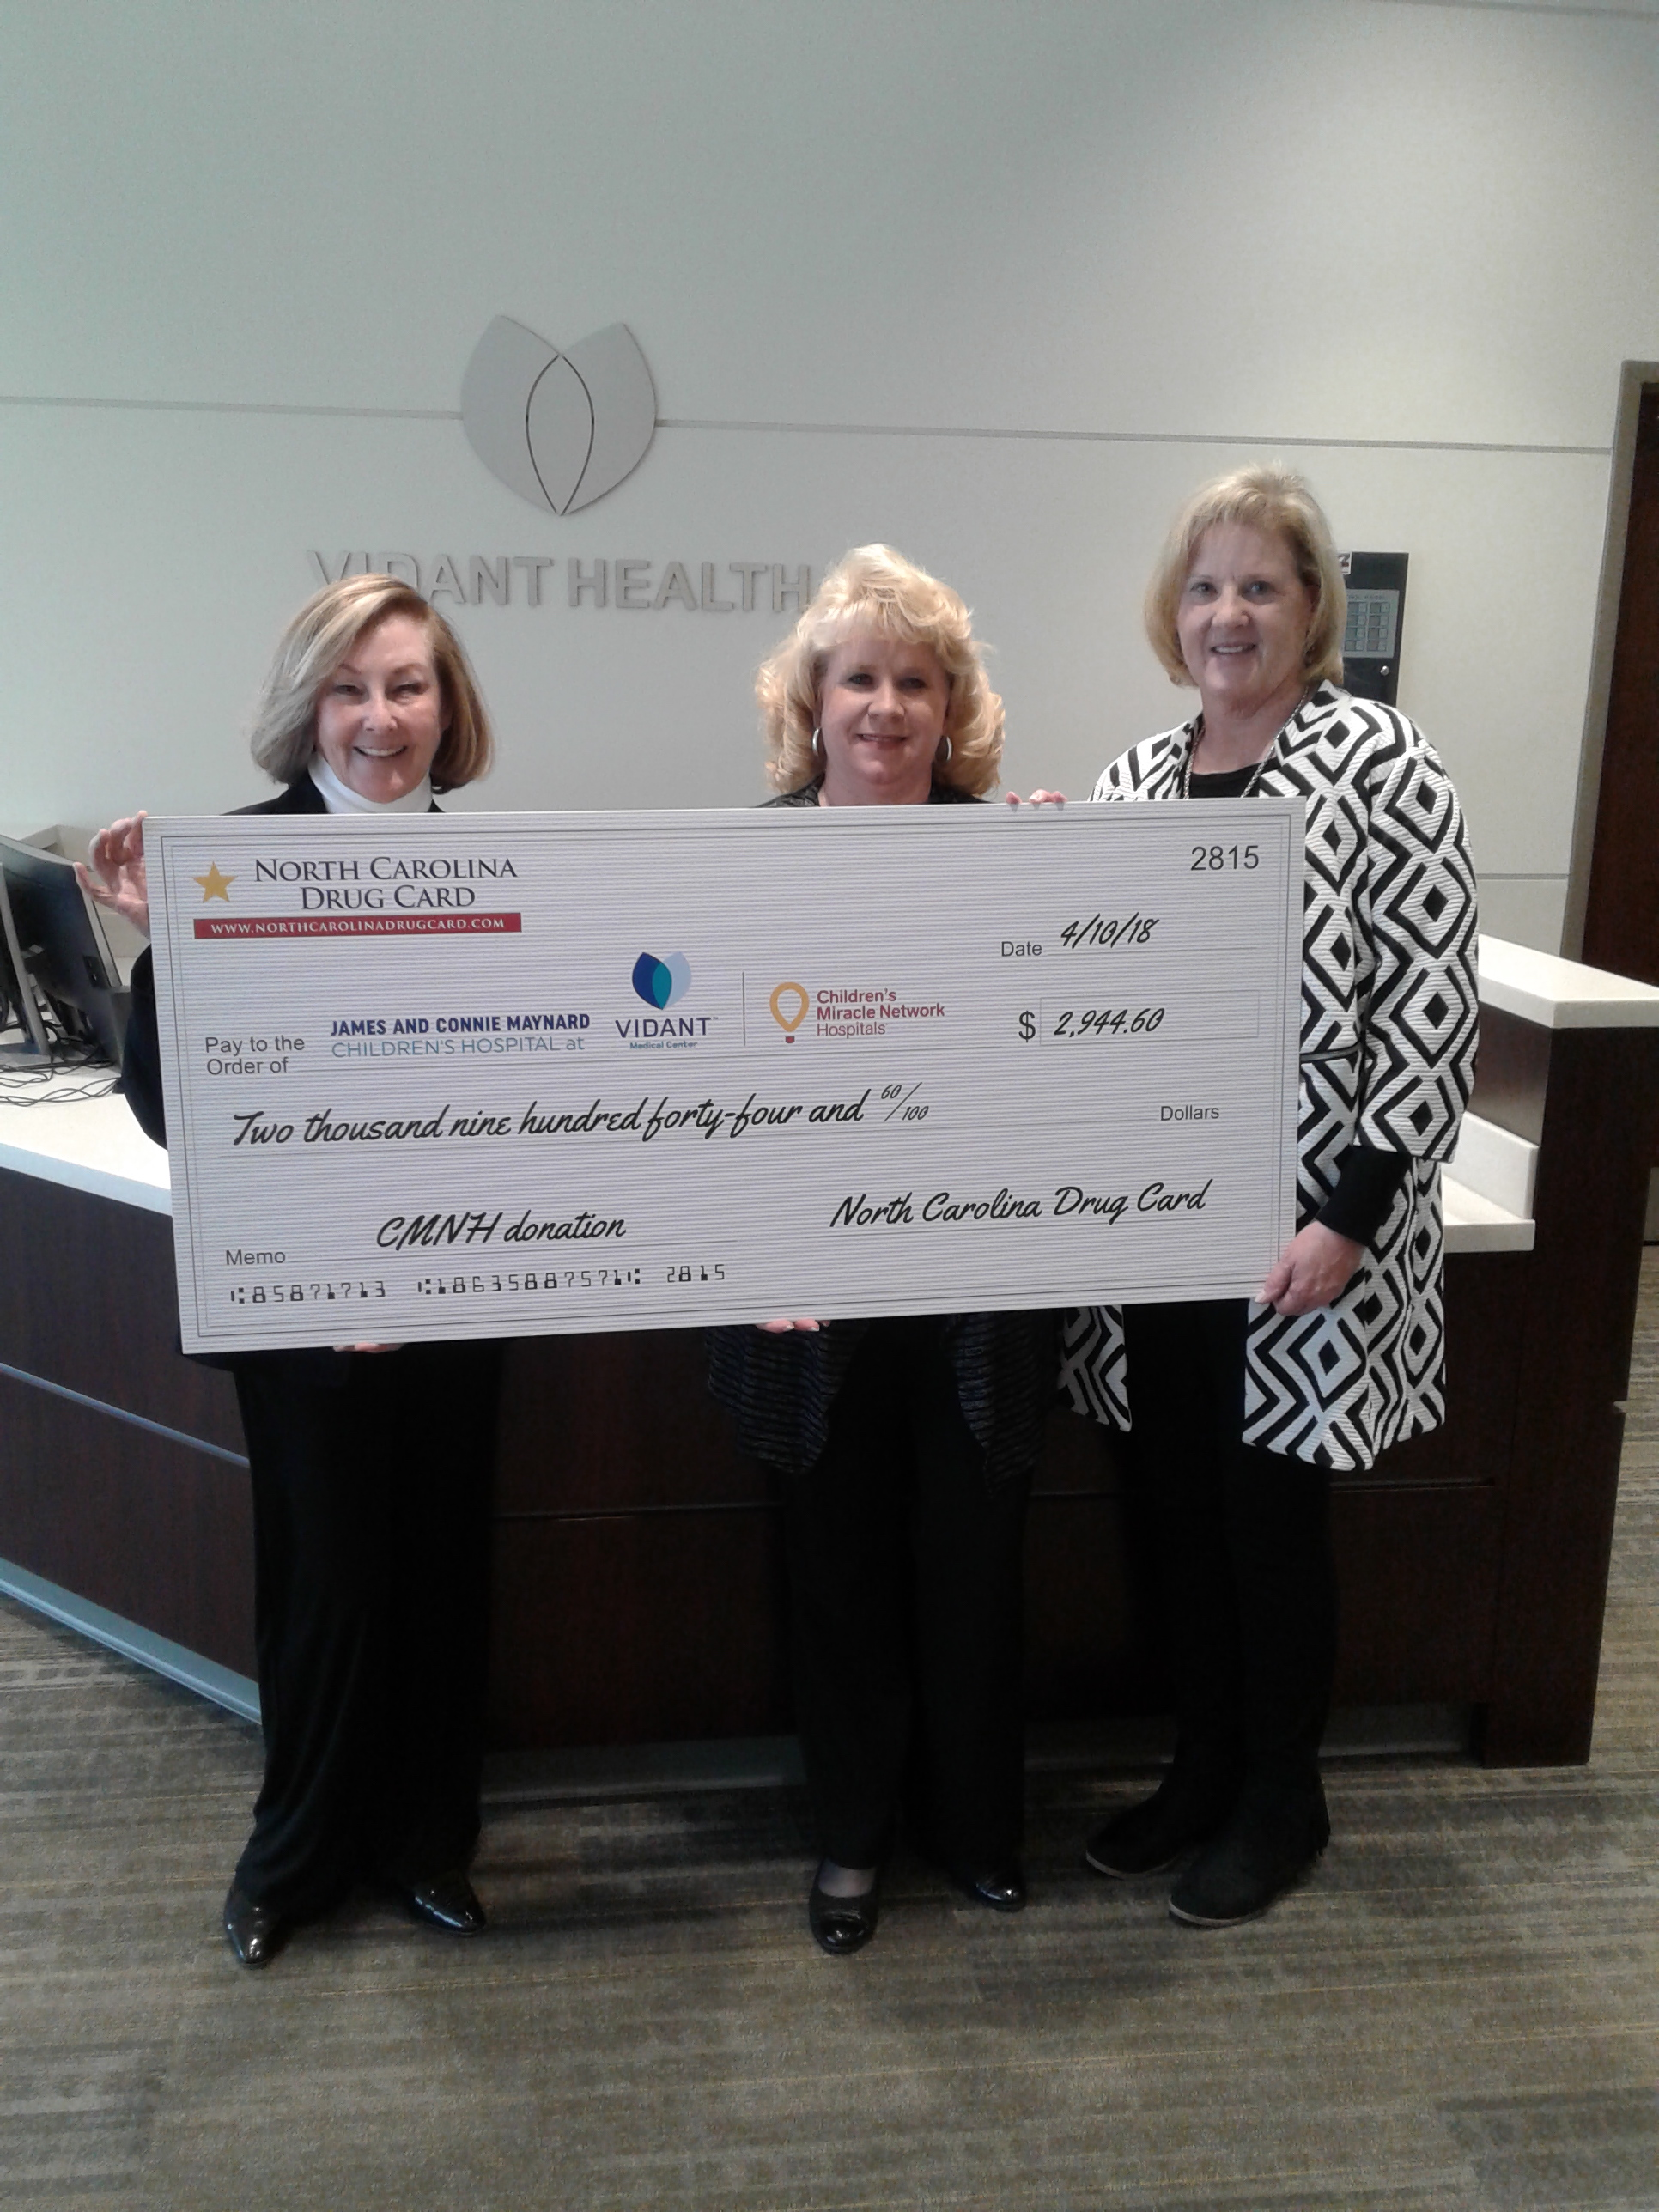 North Carolina Drug Card, powered by United Networks of America, Presents Donation to James and Connie Maynard Children's Hospital